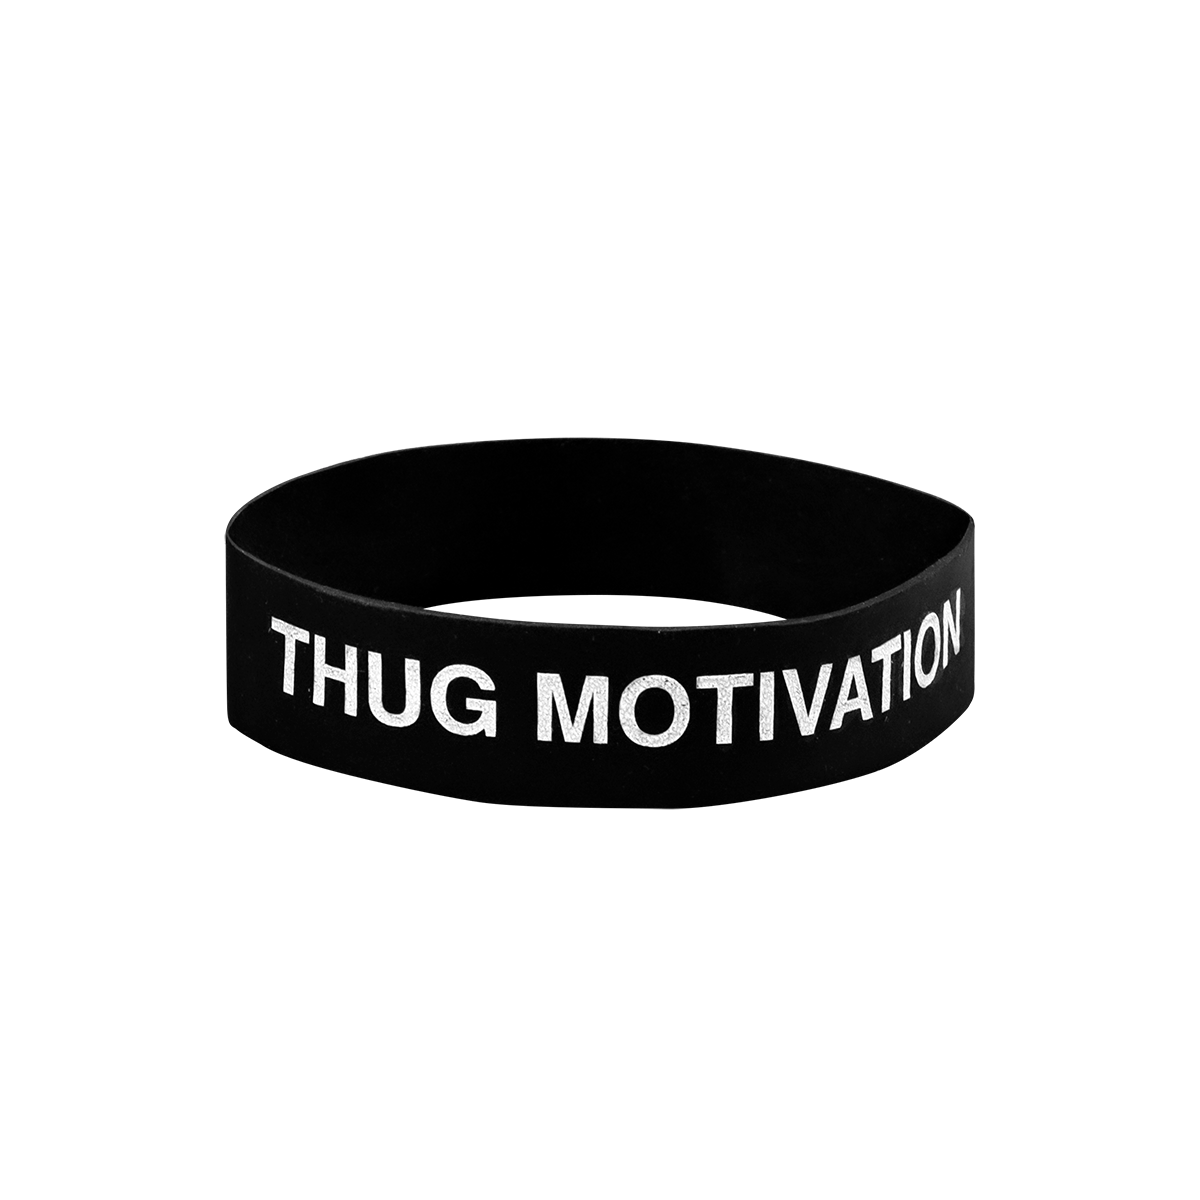 Thug Motivation Rubber Bands